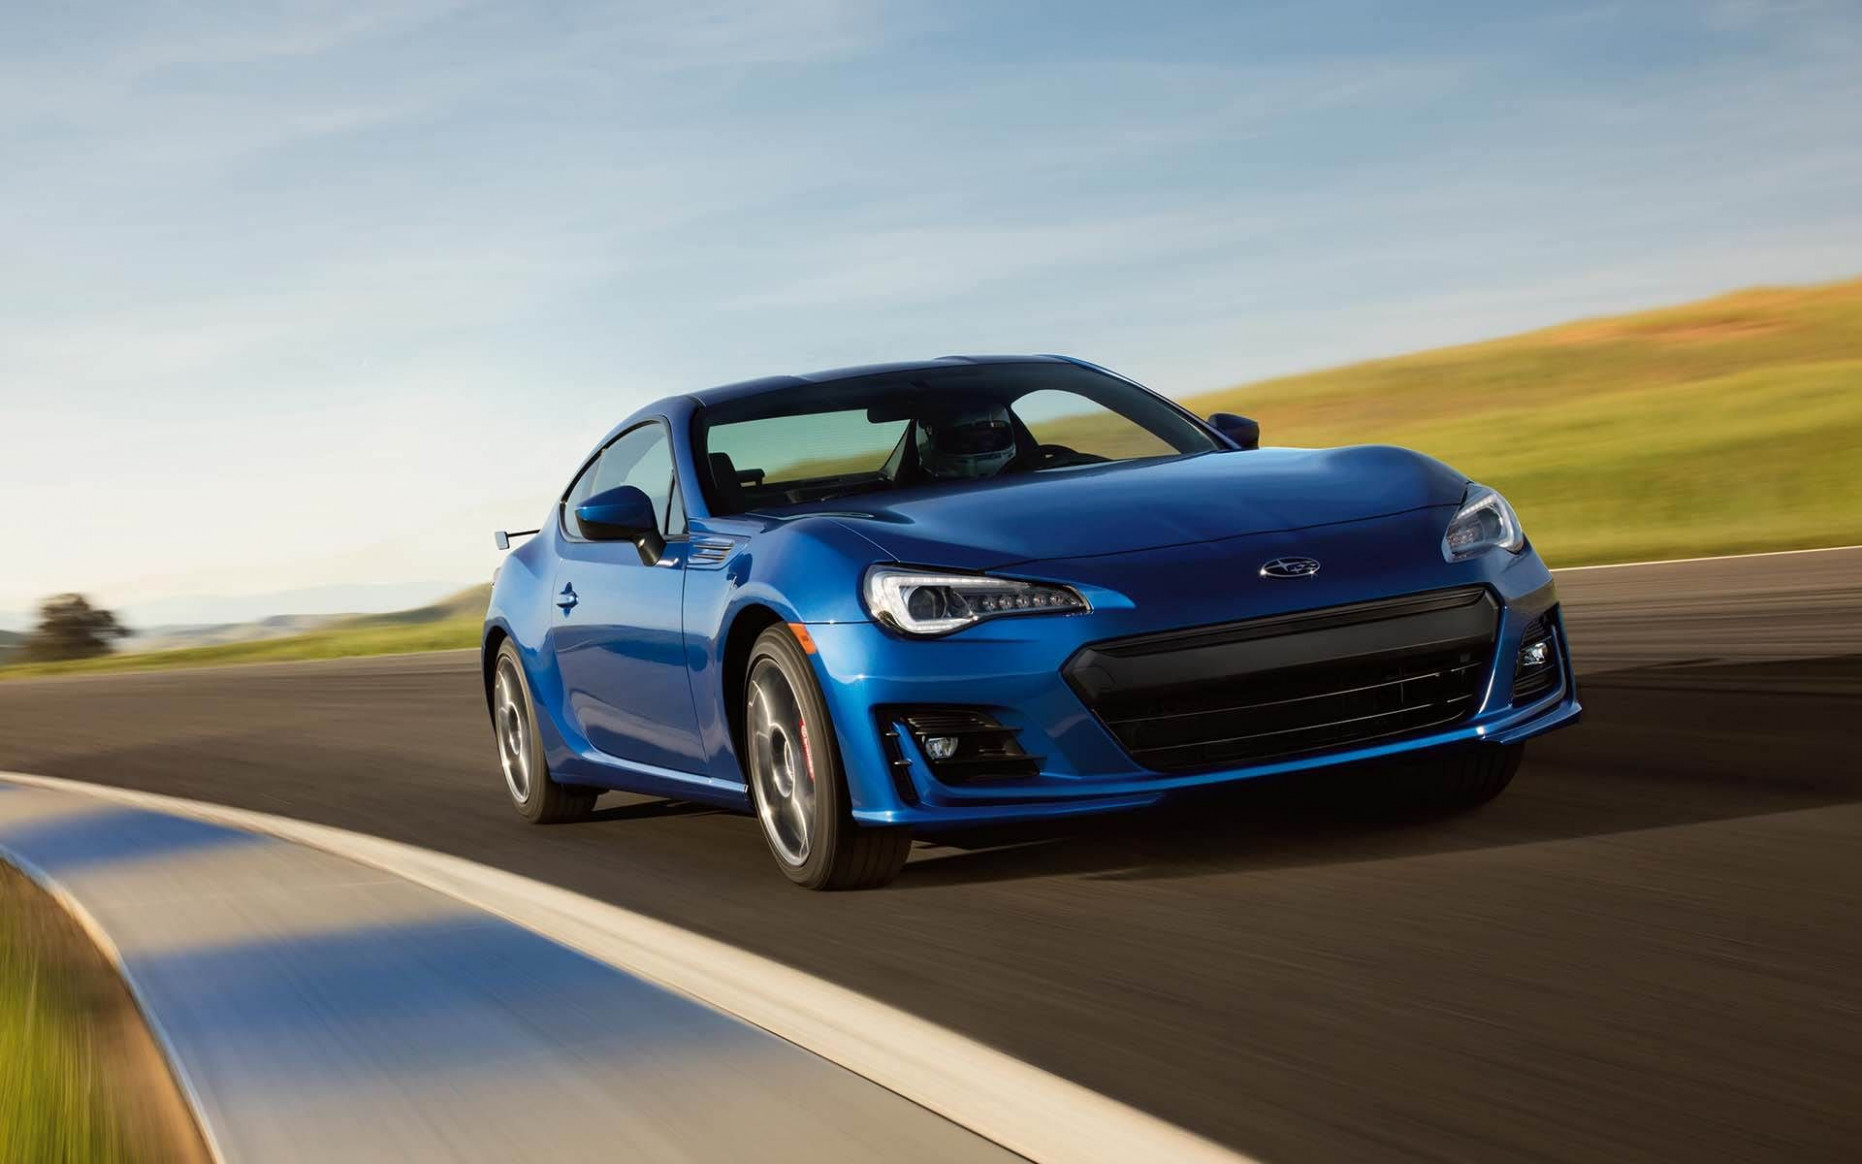 8 Subaru BRZ Review, Pricing, and Specs